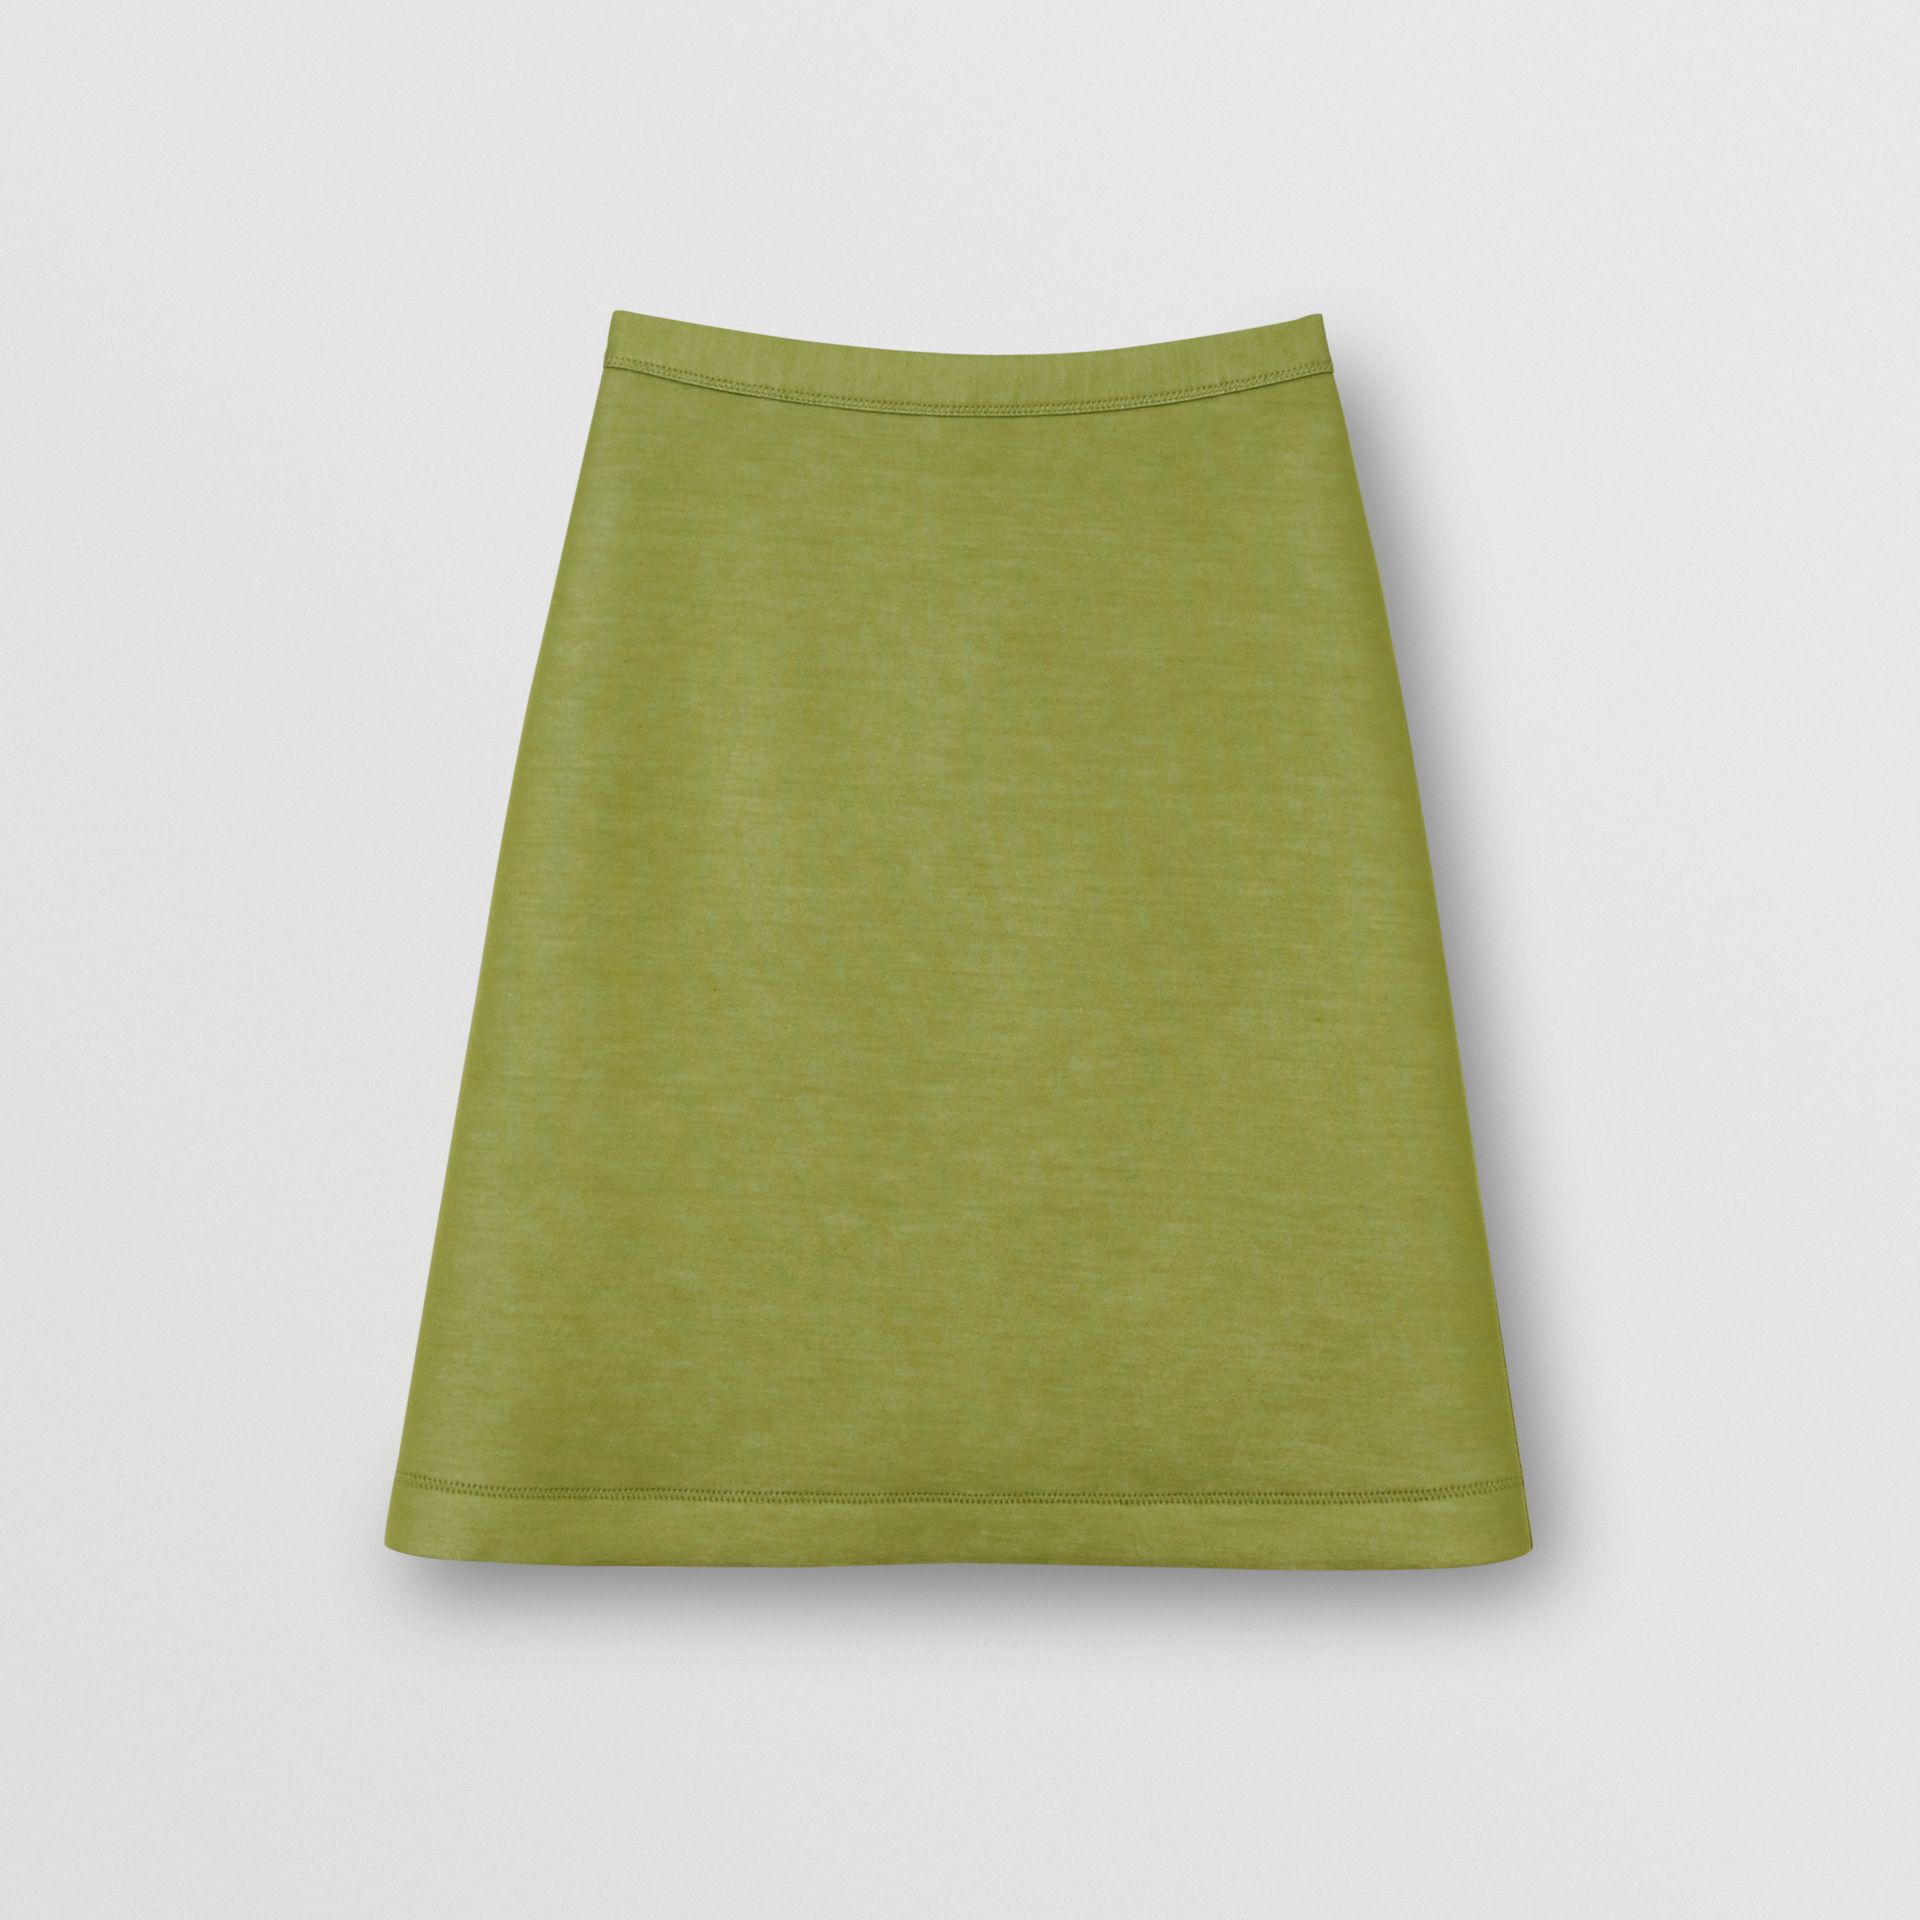 Double-faced Neoprene Skirt in Cedar Green - Women | Burberry United States - gallery image 3